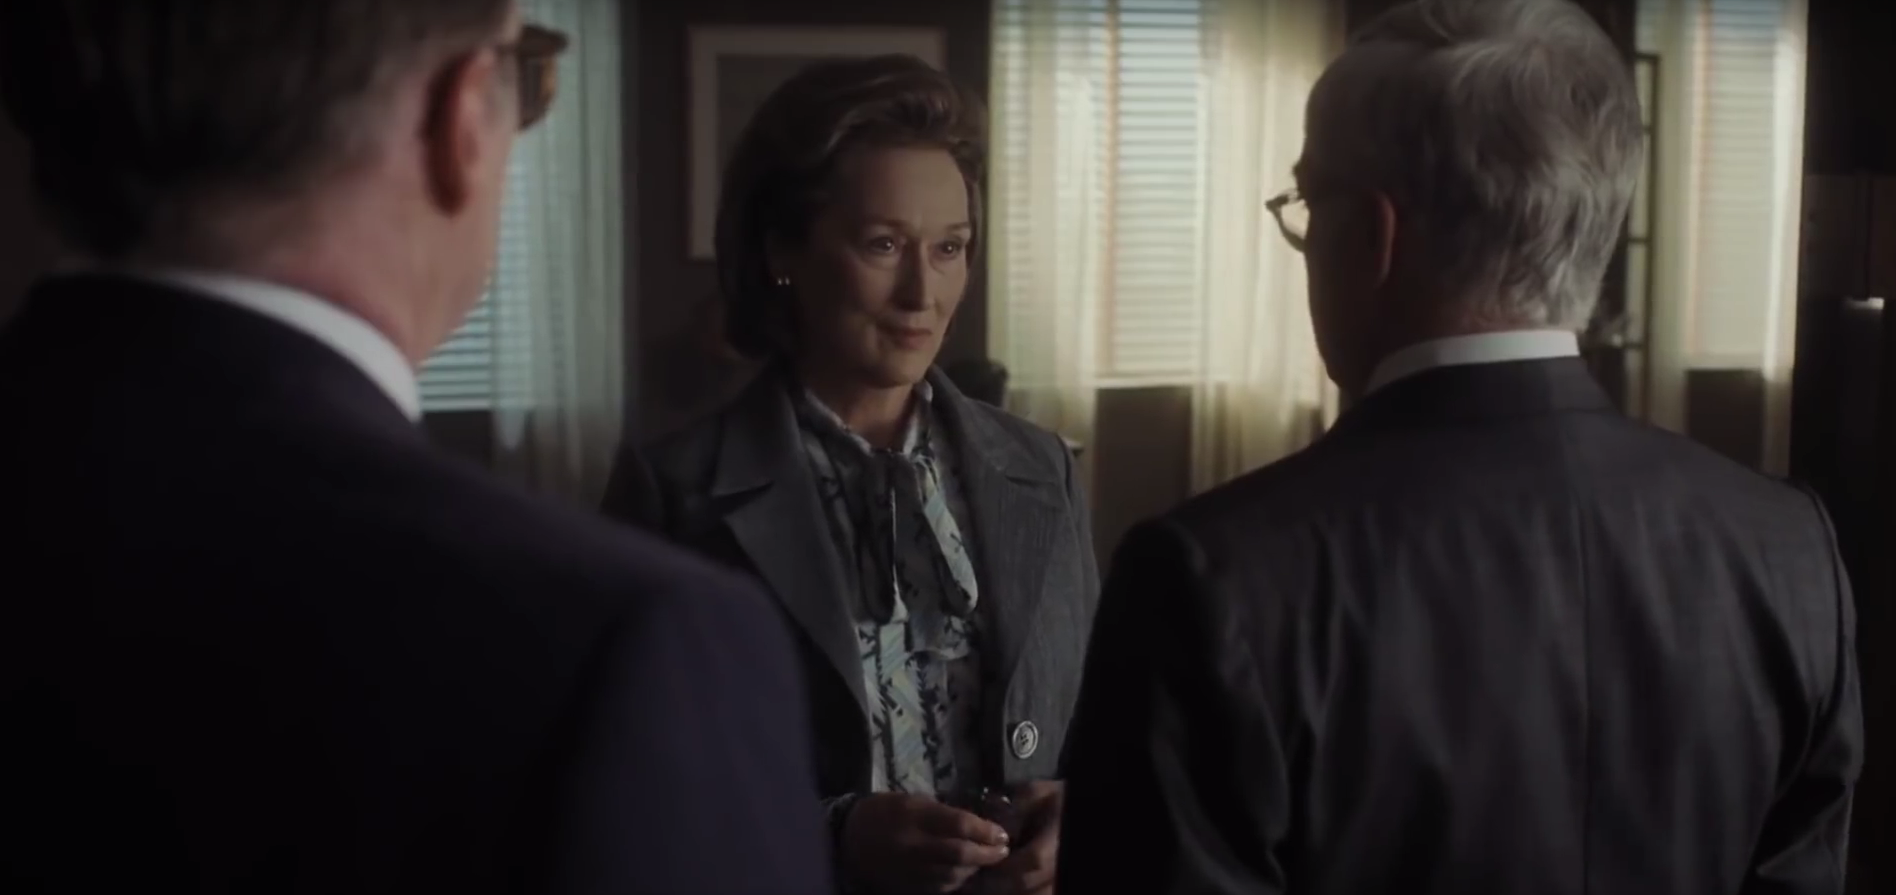 'The Post' Reviews What Are Critics Saying